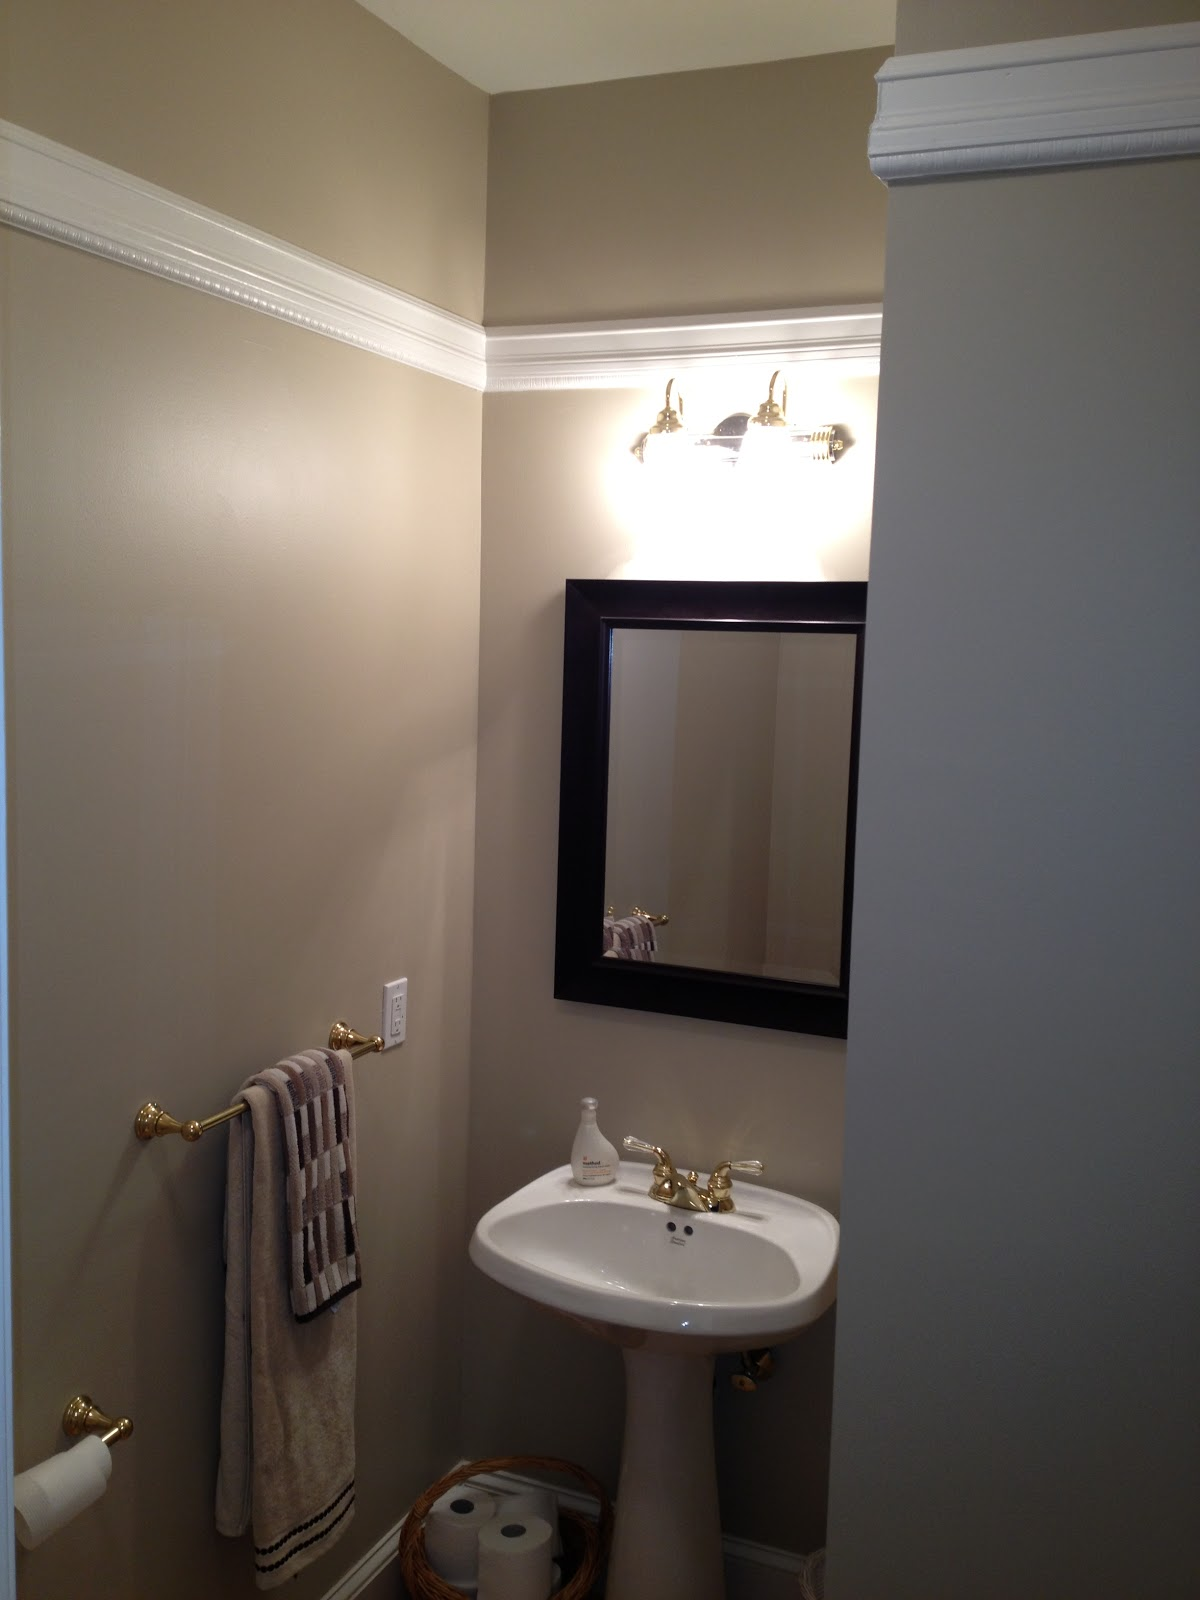 Pictures Of Chair Rails In Bathrooms Wingback Leather Home Addition Installed Rail High Ceiling Powder